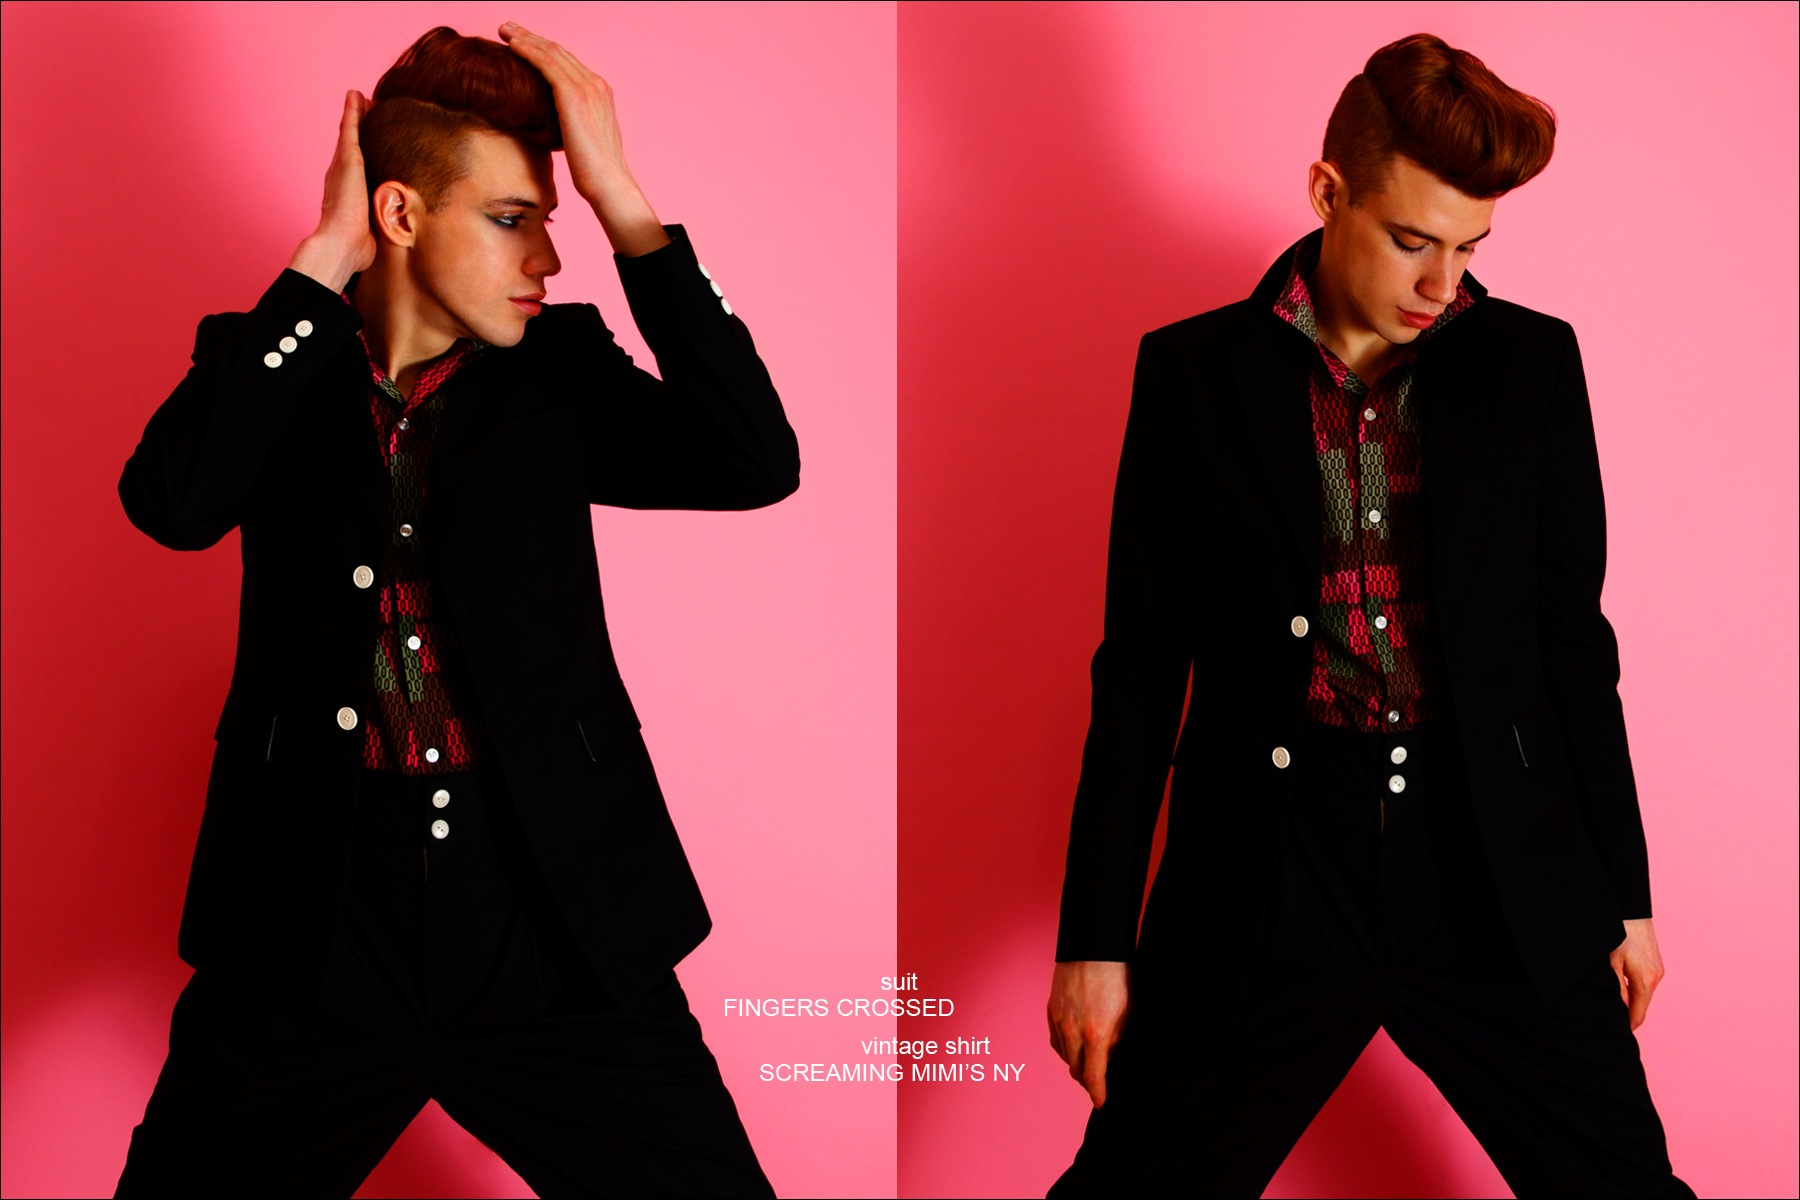 Model Lyle Lodwick wears a suit by Fingers Crossed, photographed by Alexander Thompson for Ponyboy magazine in New York.